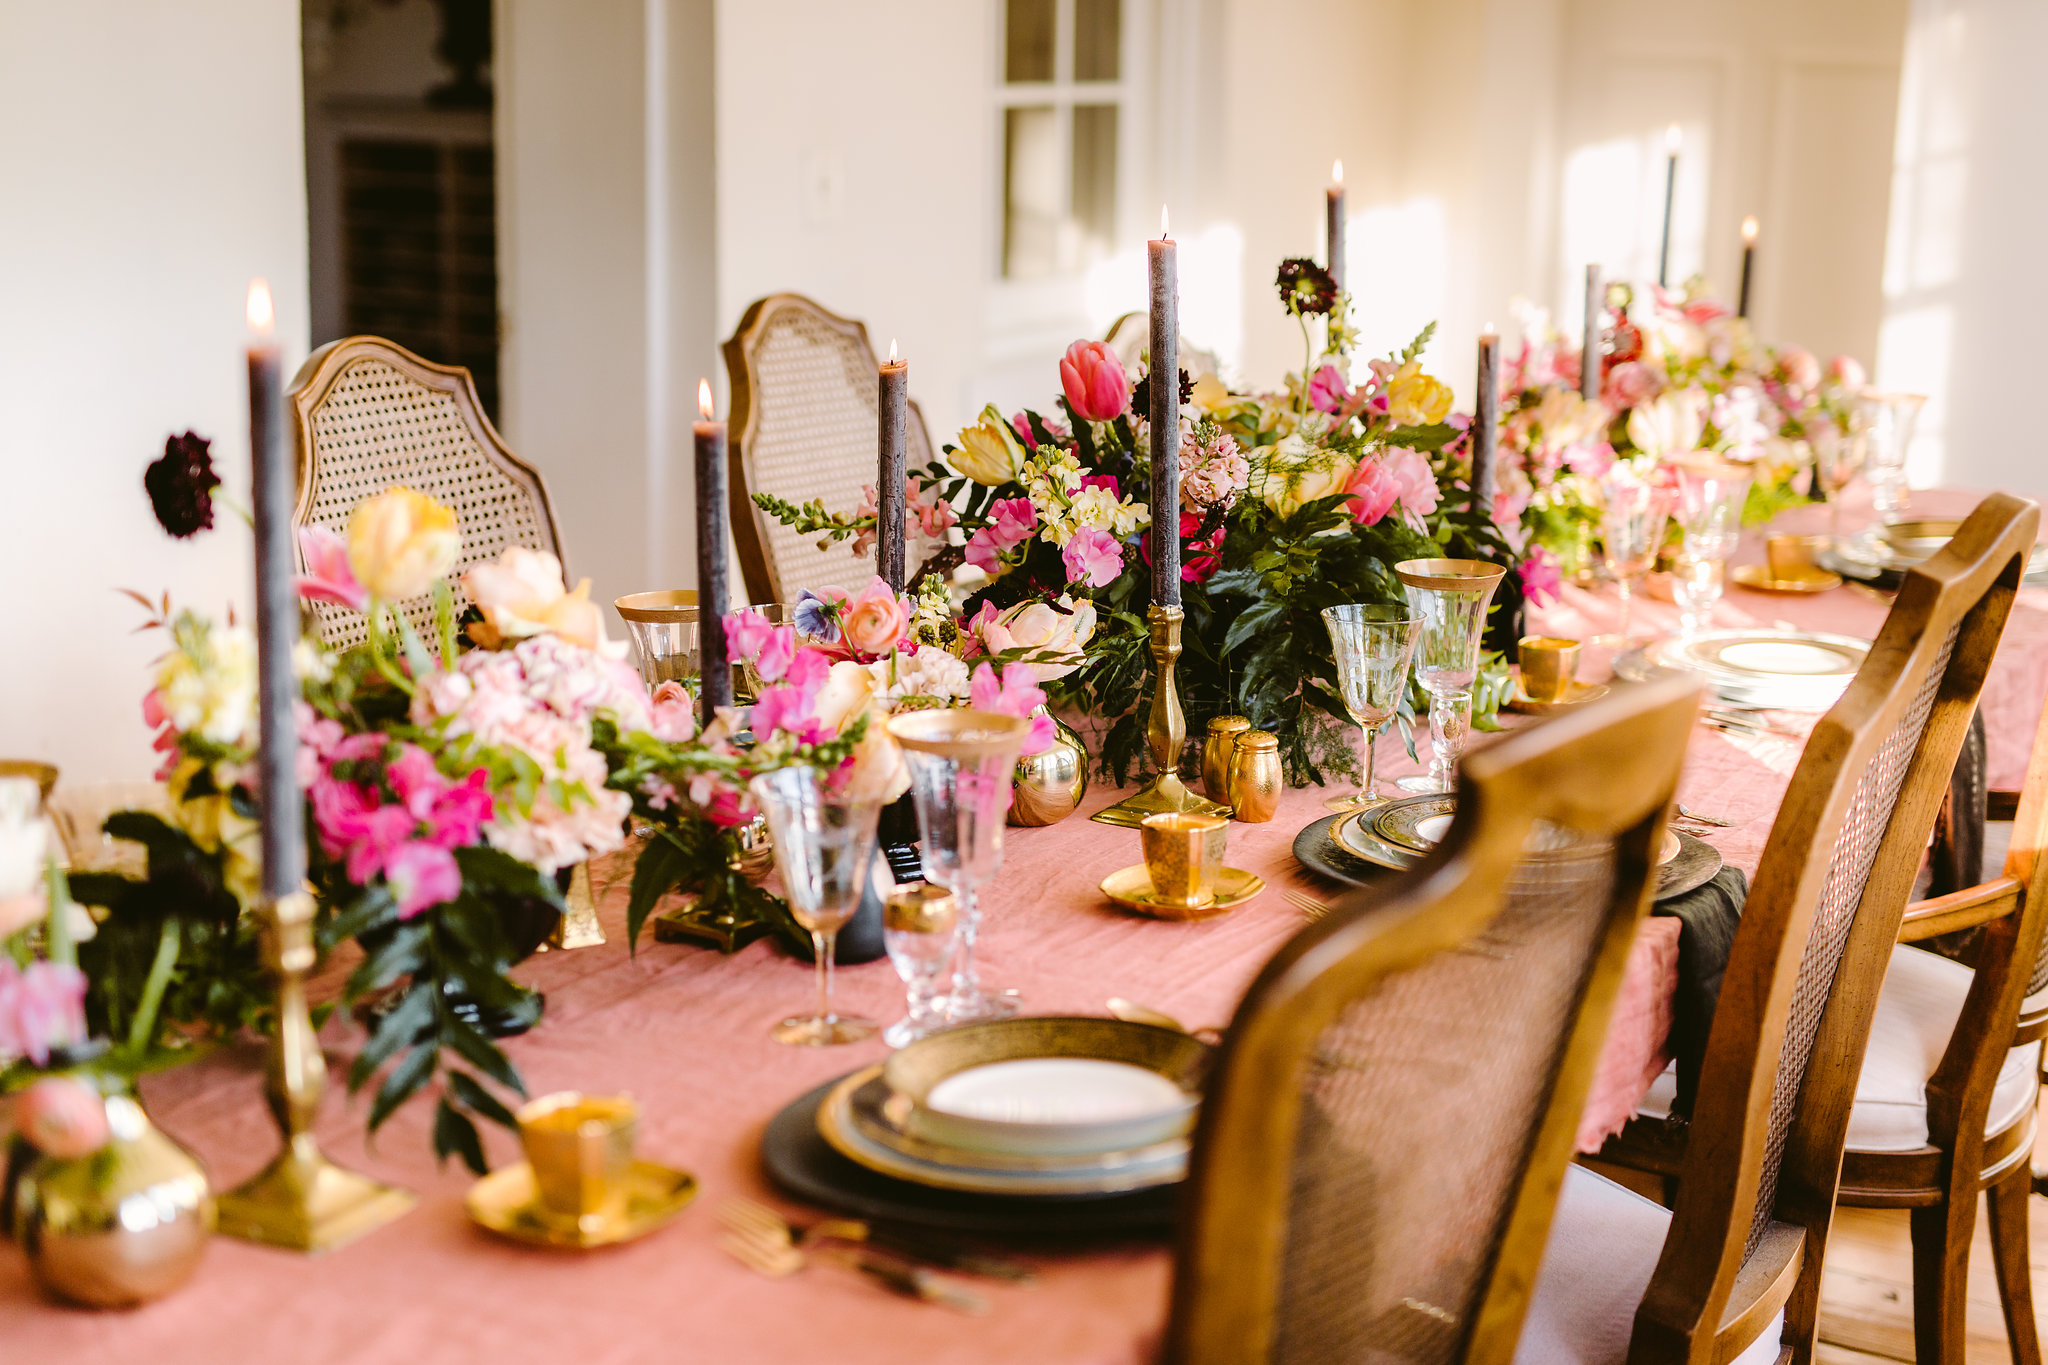 tablescape-luxury-wedding-reception-flowers-and-candles.jpg